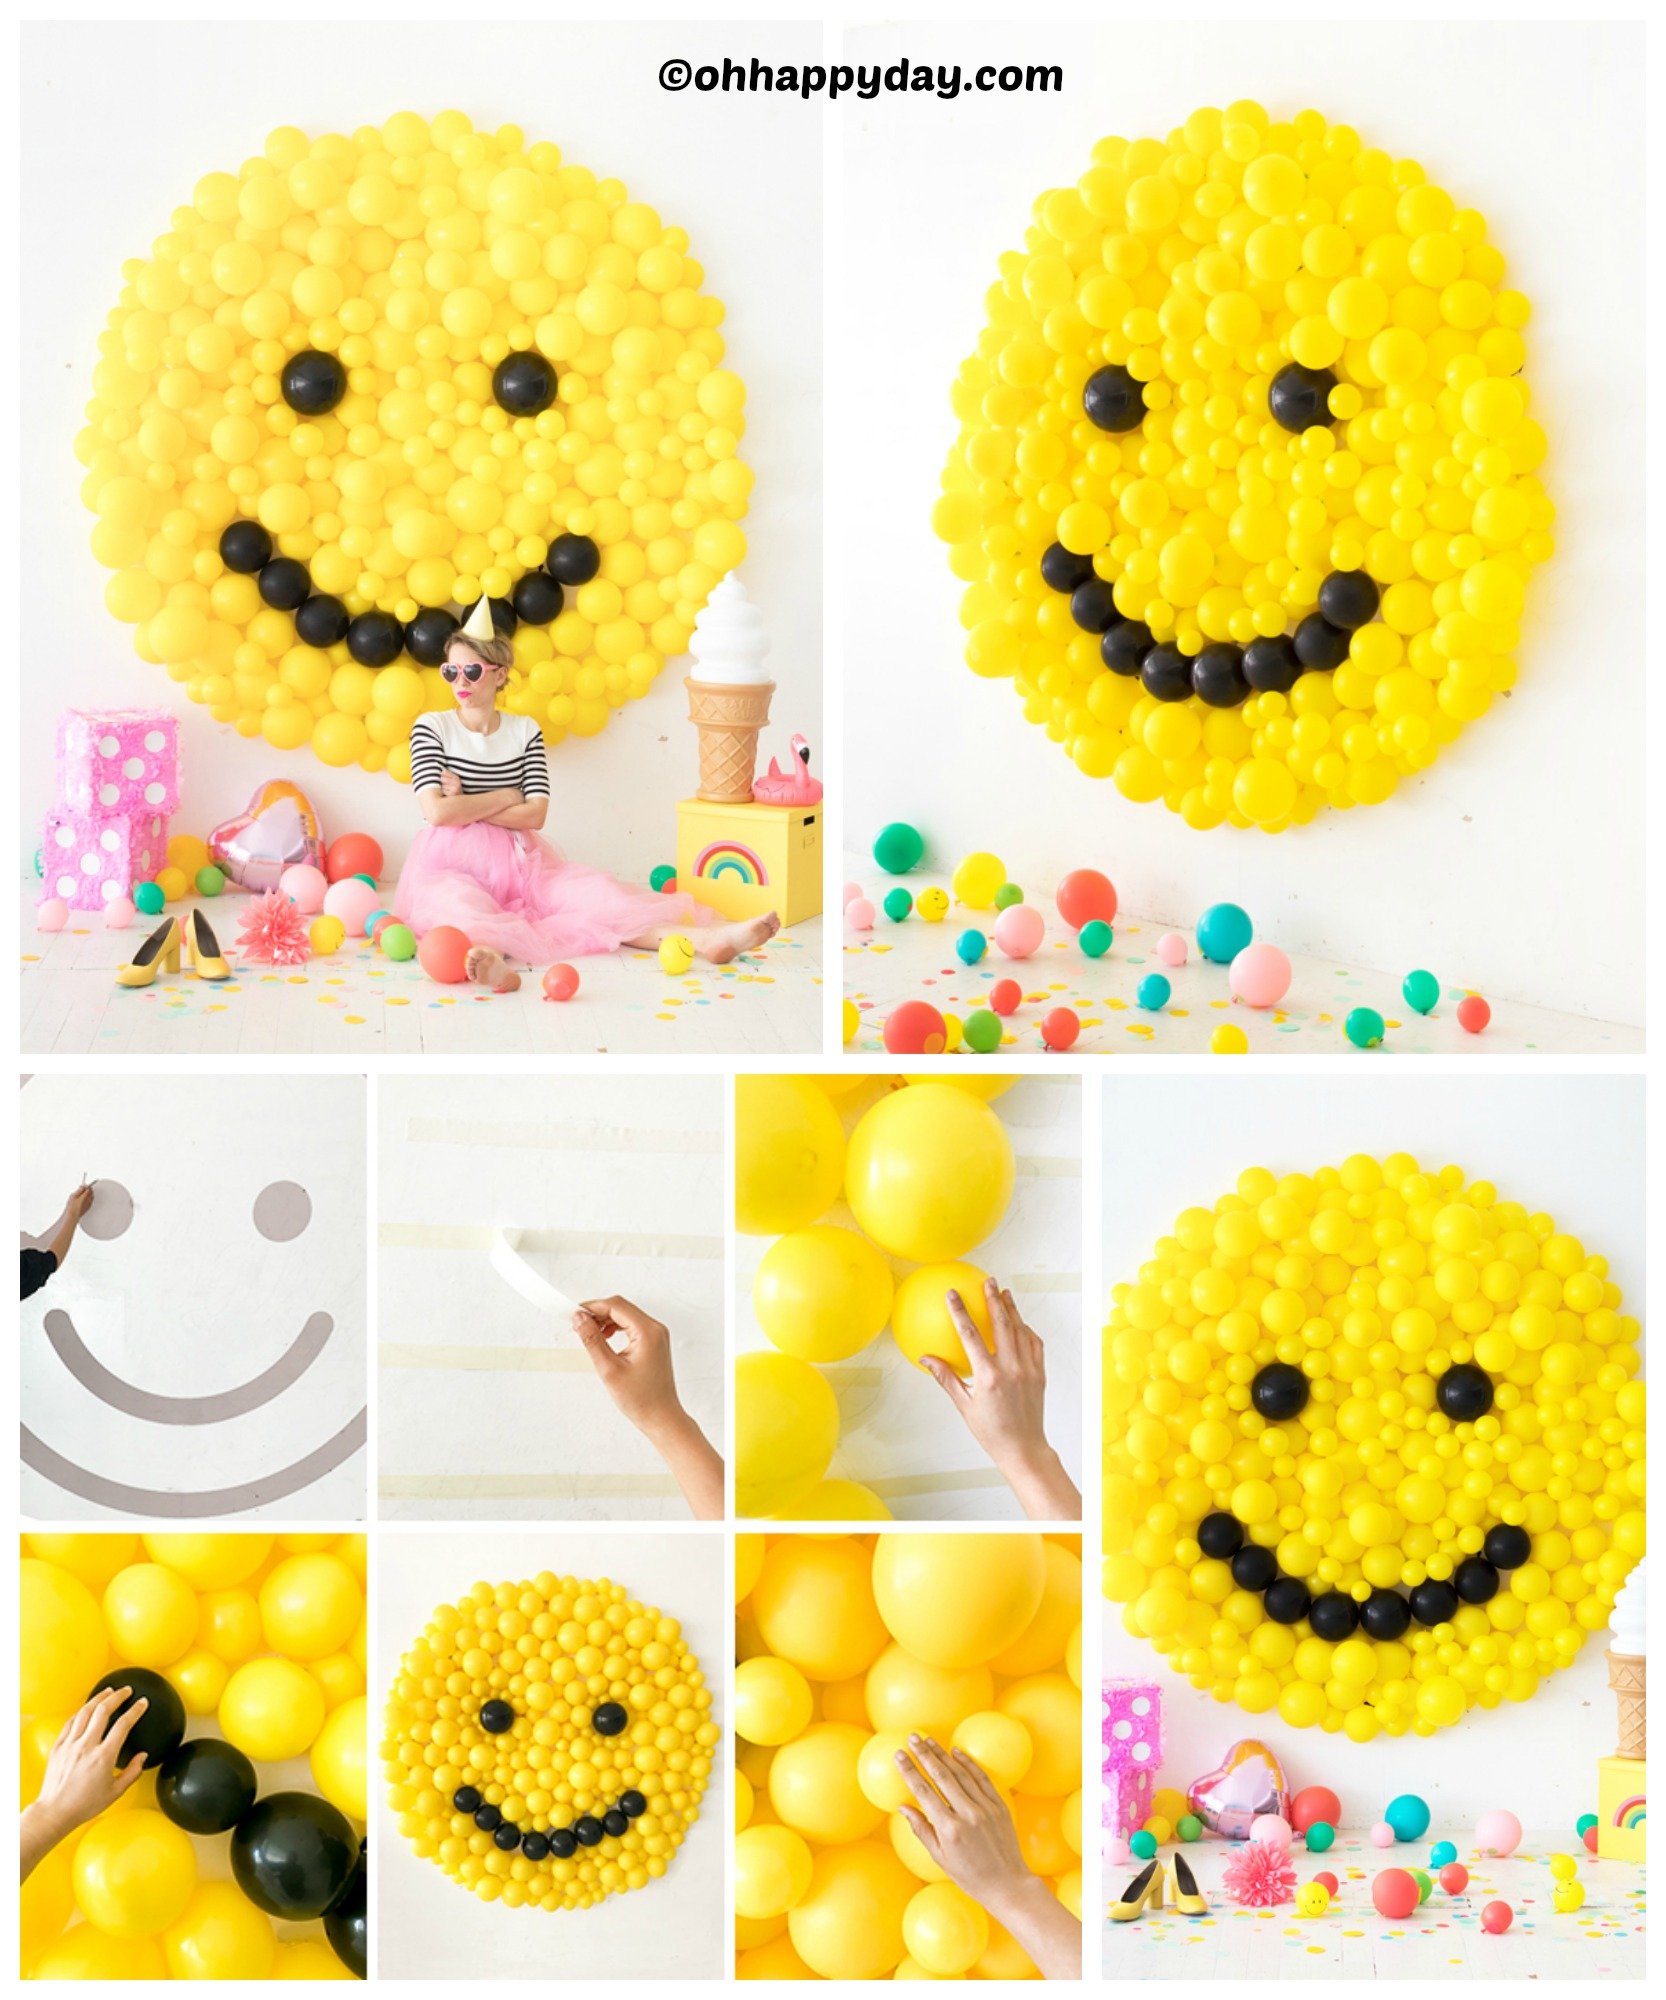 DIY Smiley Face Balloon Wall Art Tutorial - DIY Home Tutorials